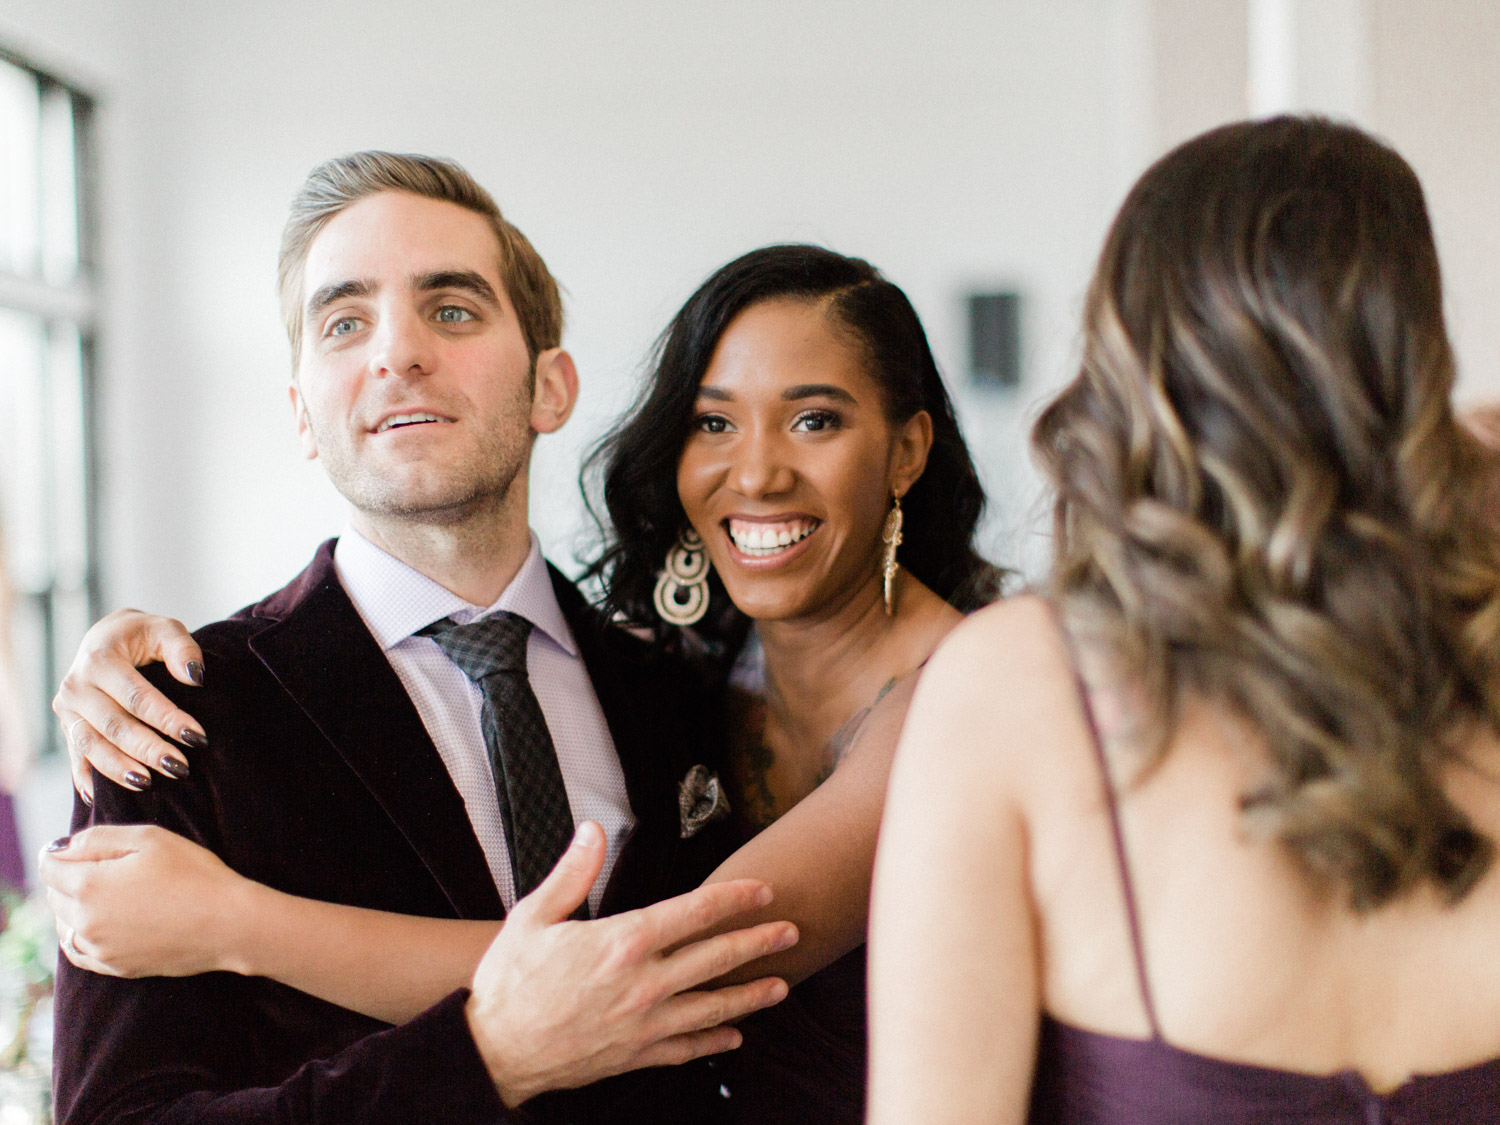 -	Candid wedding photograph of guests, bride and groom enjoying the reception at Italian wedding at The Burroughes.  Captured by Toronto wedding photographer Corynn Fowler Photography.